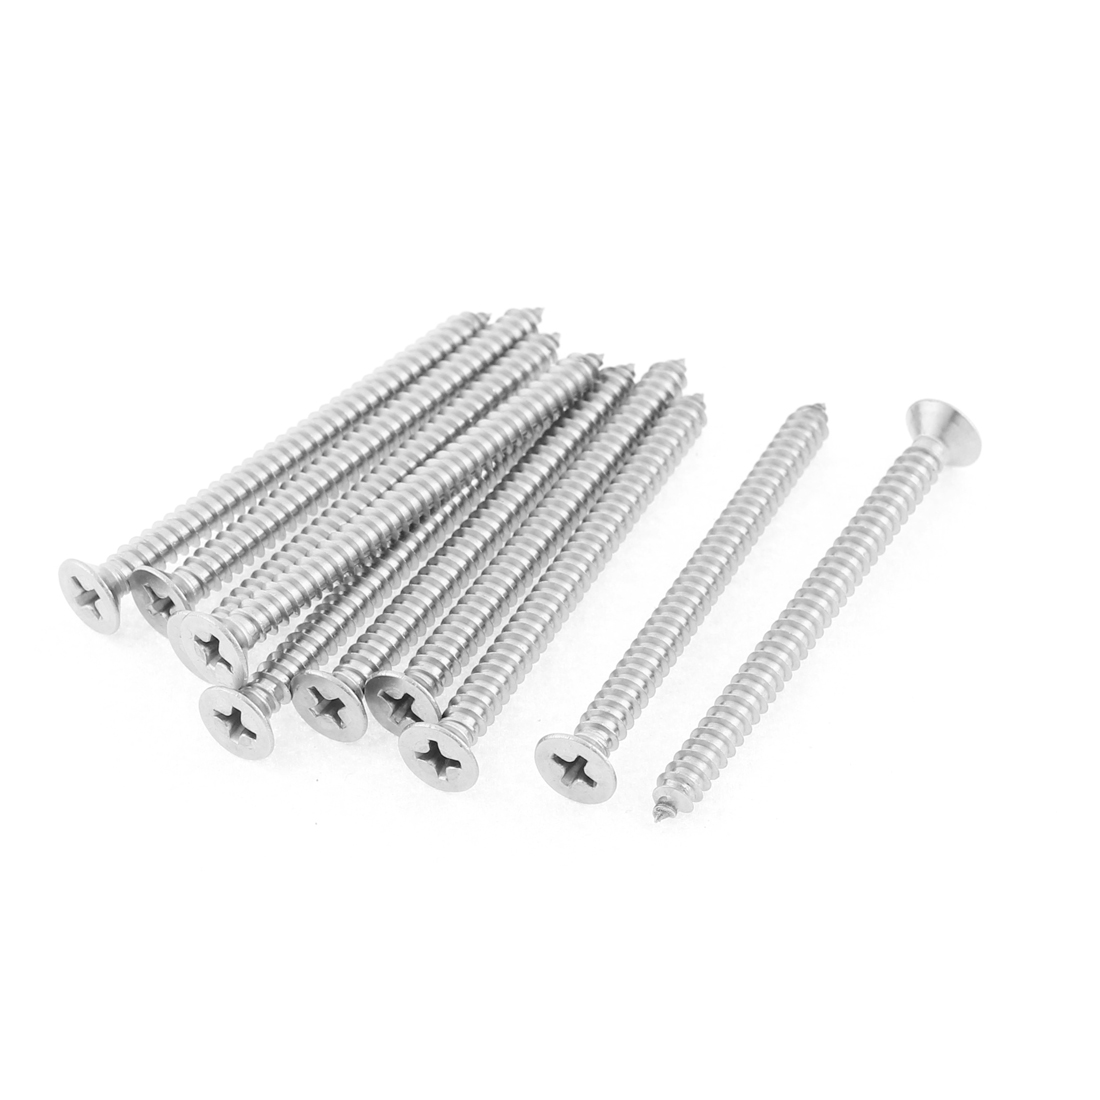 10 Pcs 4.8mm60mm Stainless Steel Phillips Flat Head Sheet Self Tapping Screws